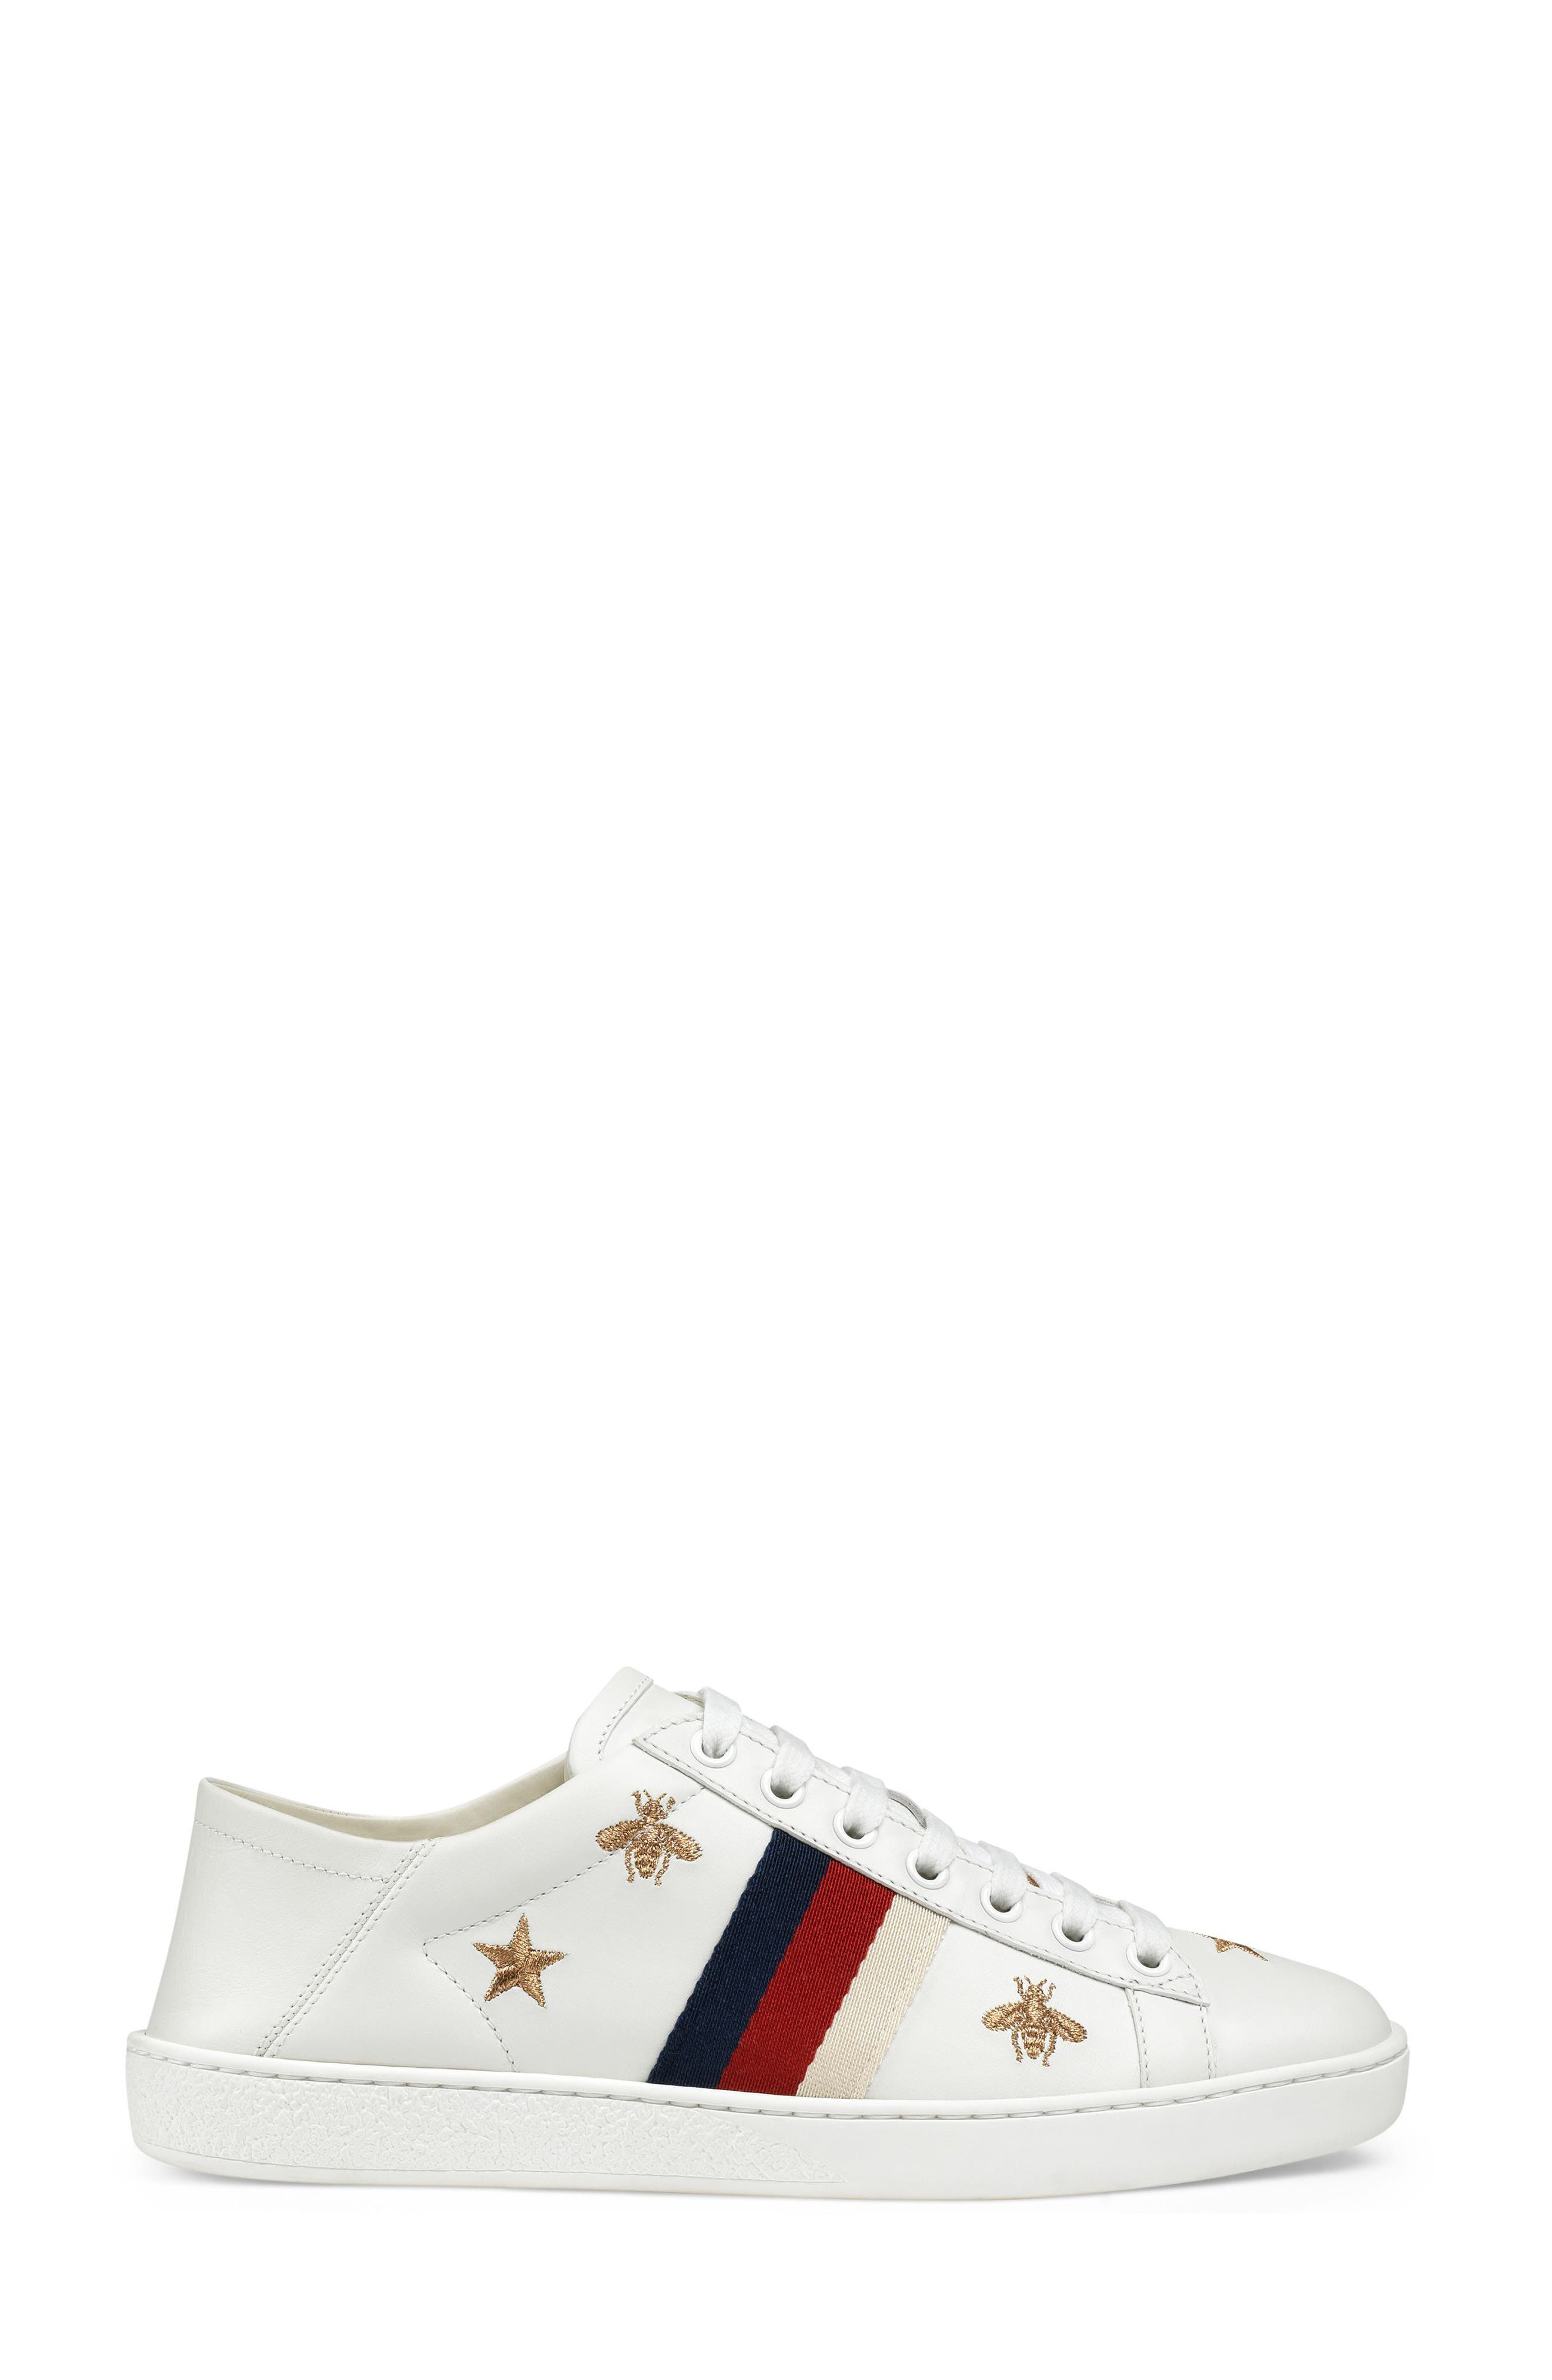 New Ace Convertible Heel Sneaker,                         Main,                         color, WHITE/ BEE PRINT